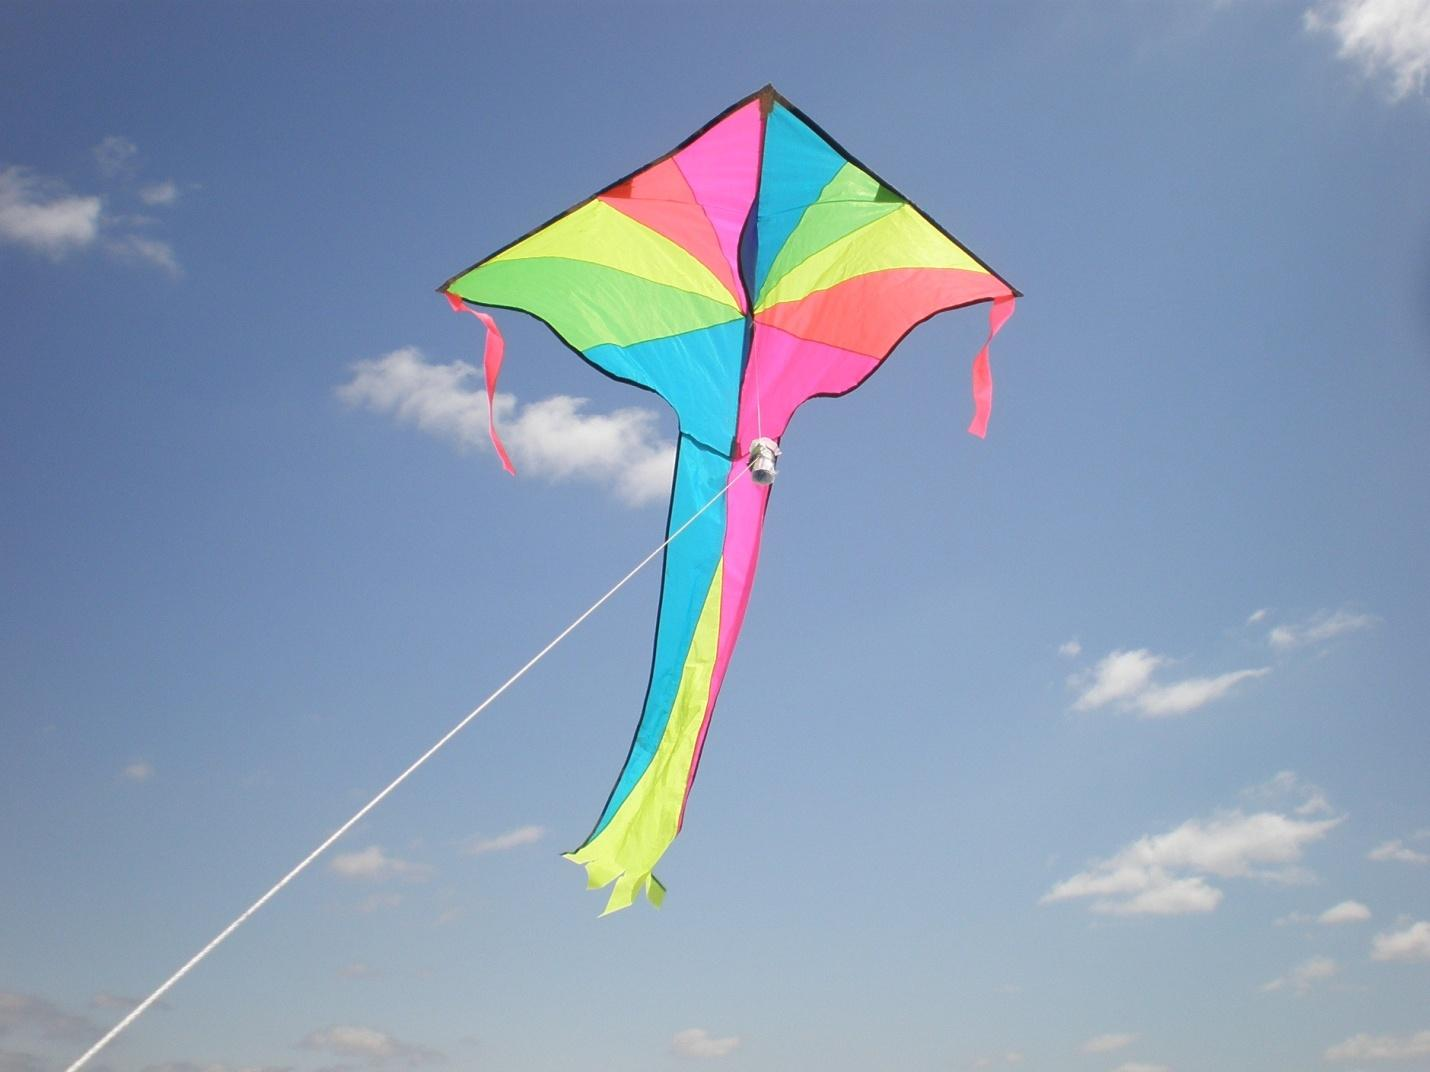 Oh, go fly a kite!